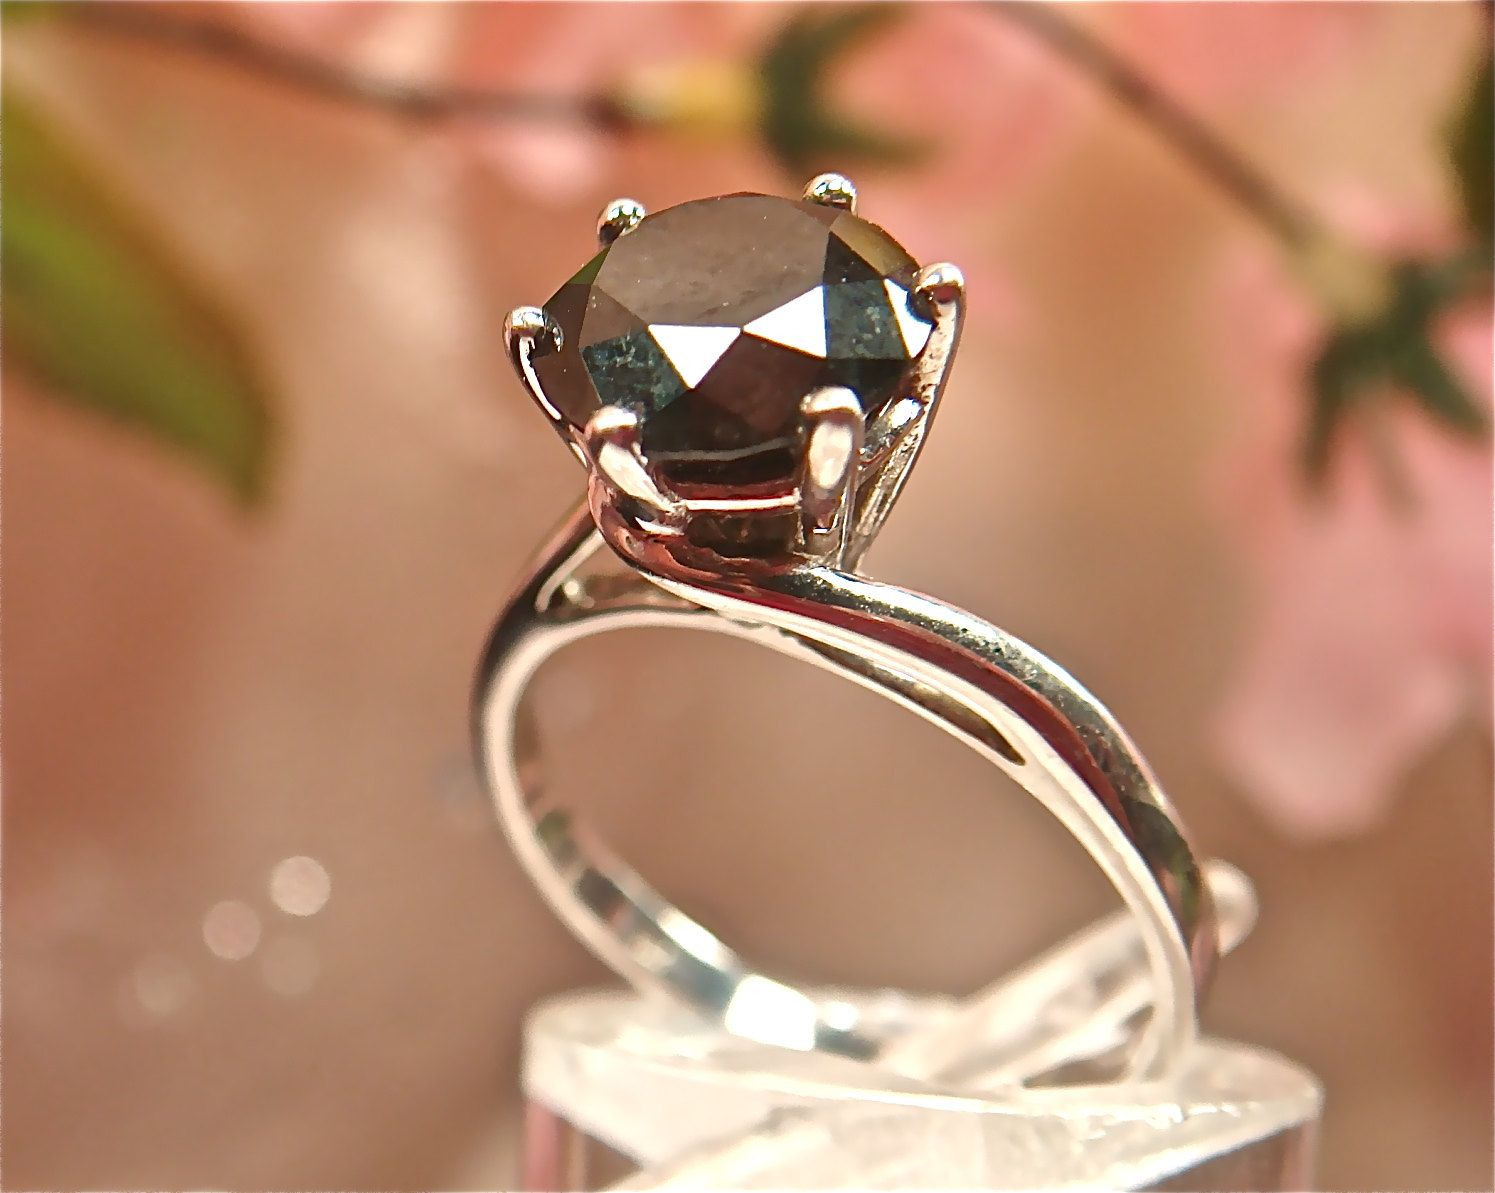 Black Diamond Ring w/ HUGE 1.5ct Solitaire - Engagement, Wedding Solid 10k White Gold - unique jewelry